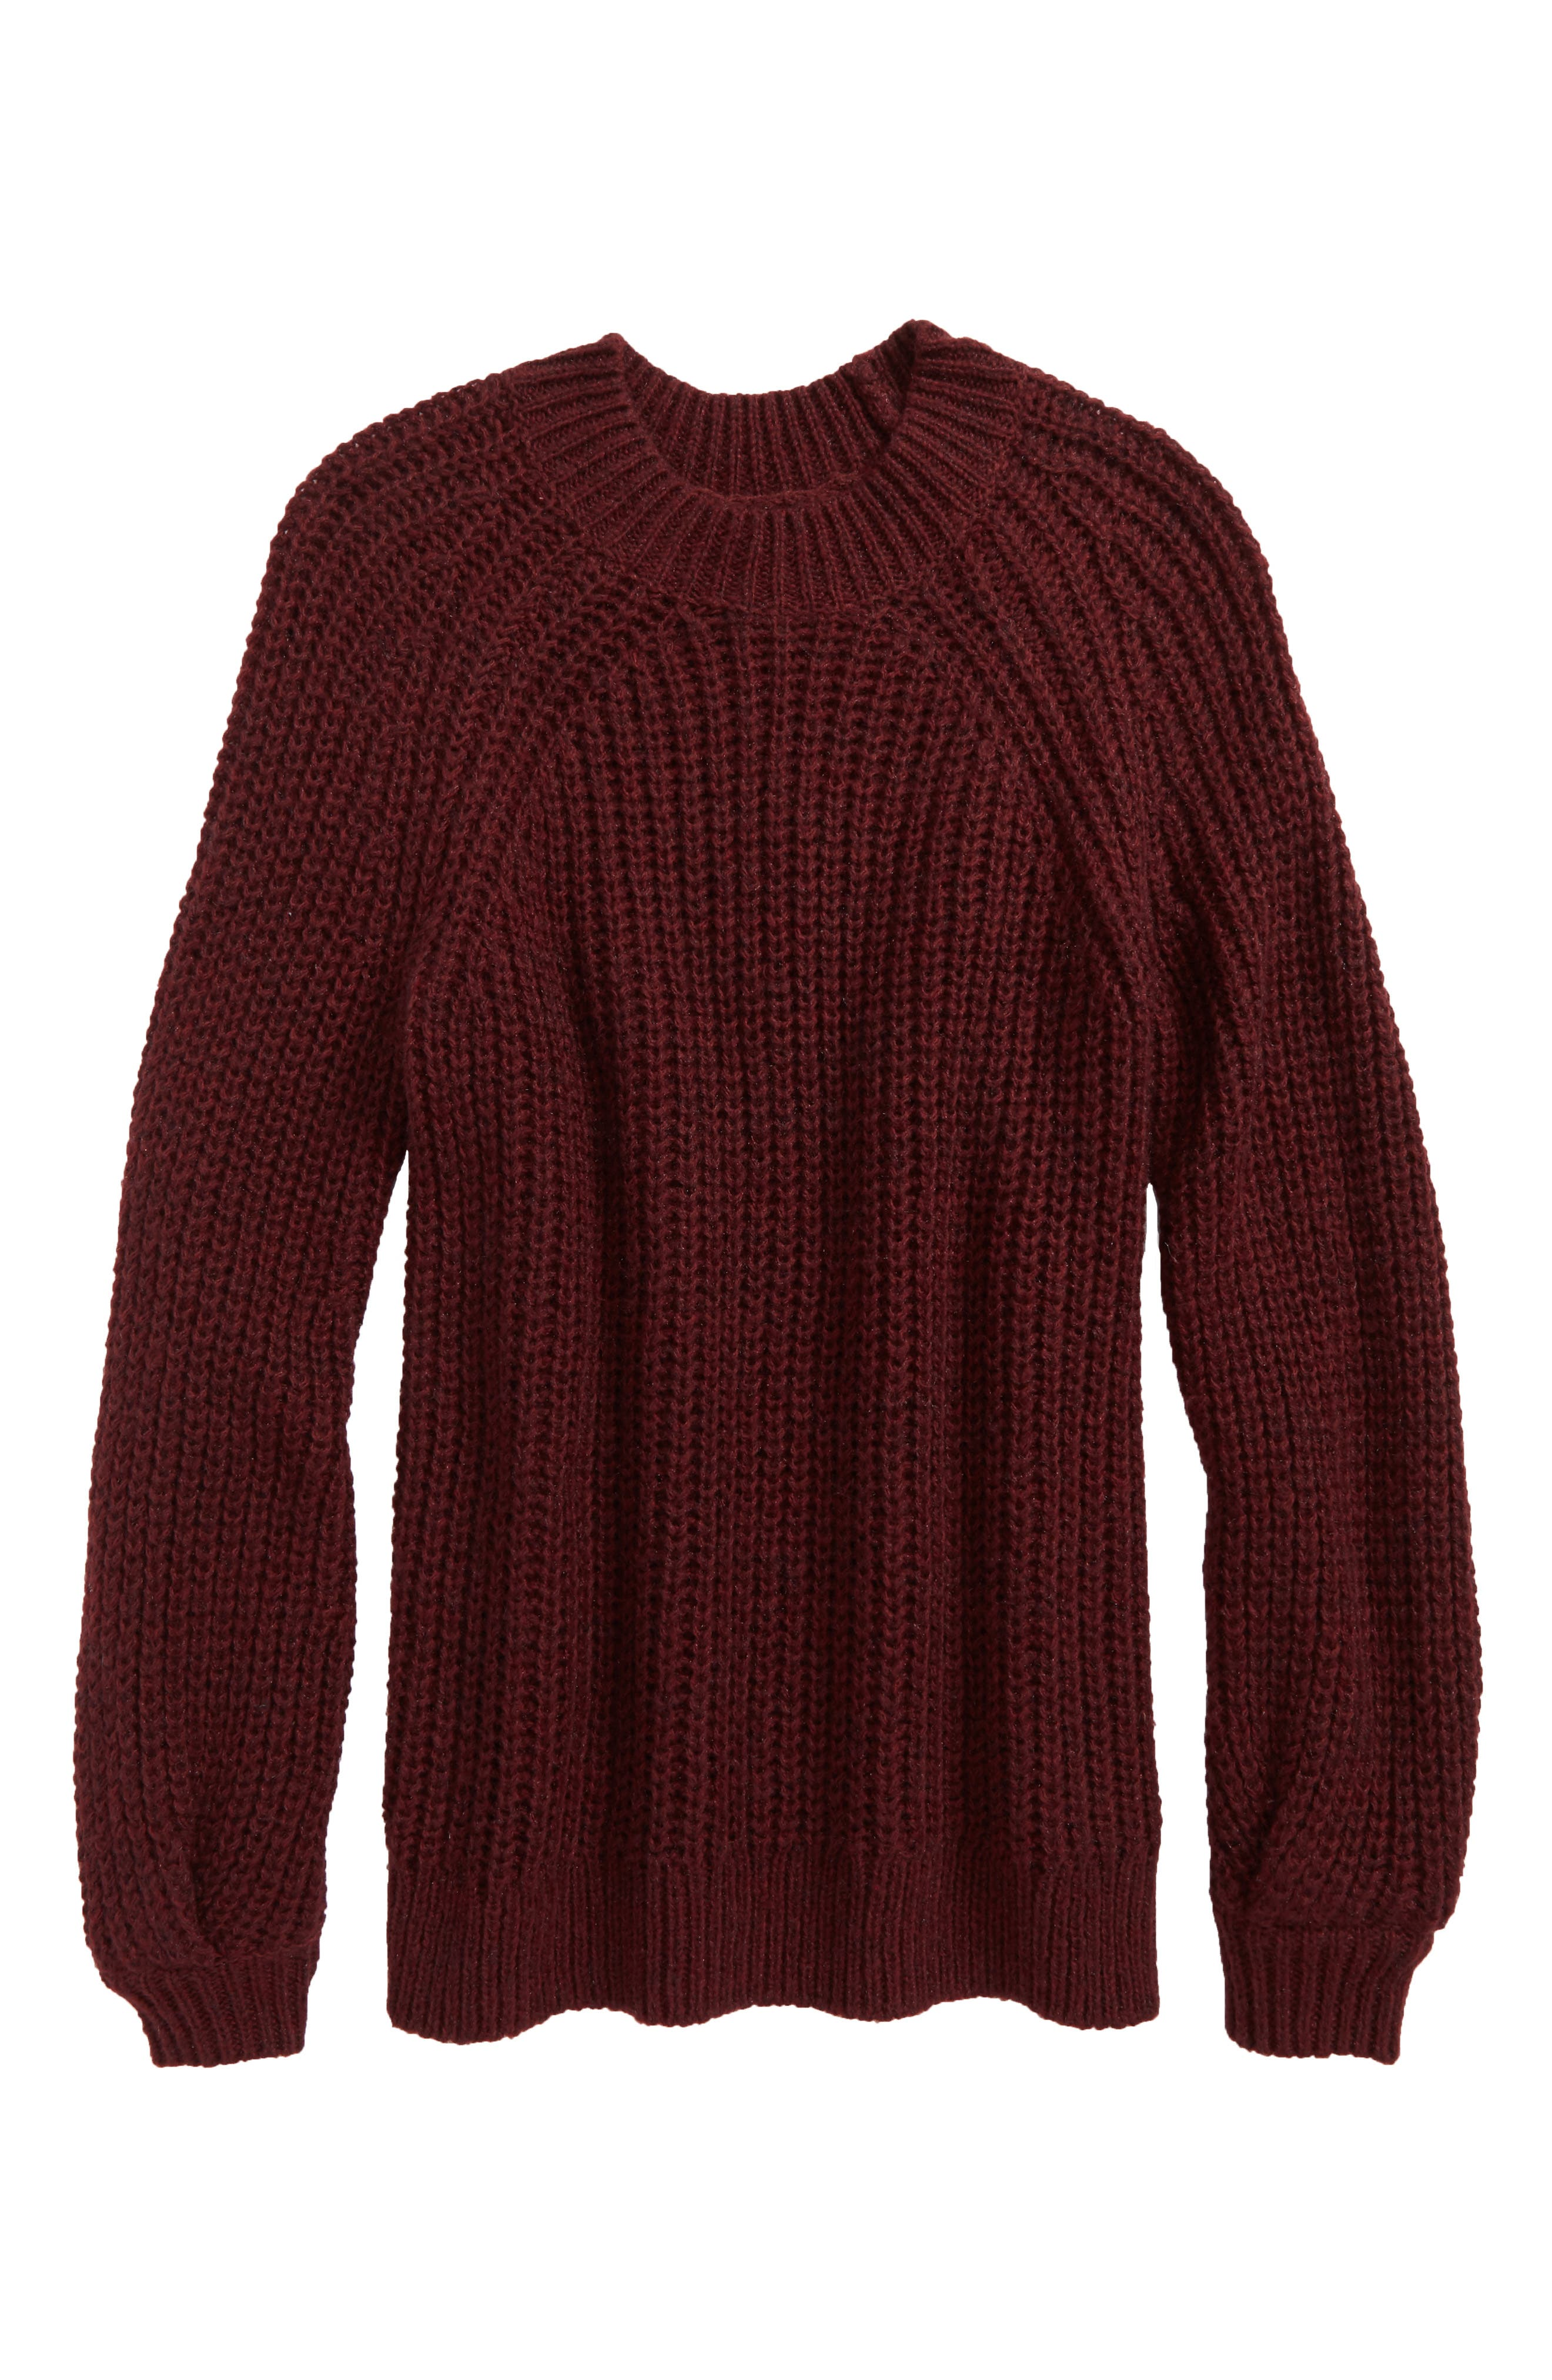 Bubble Sleeve Sweater,                         Main,                         color, Burgundy Royale